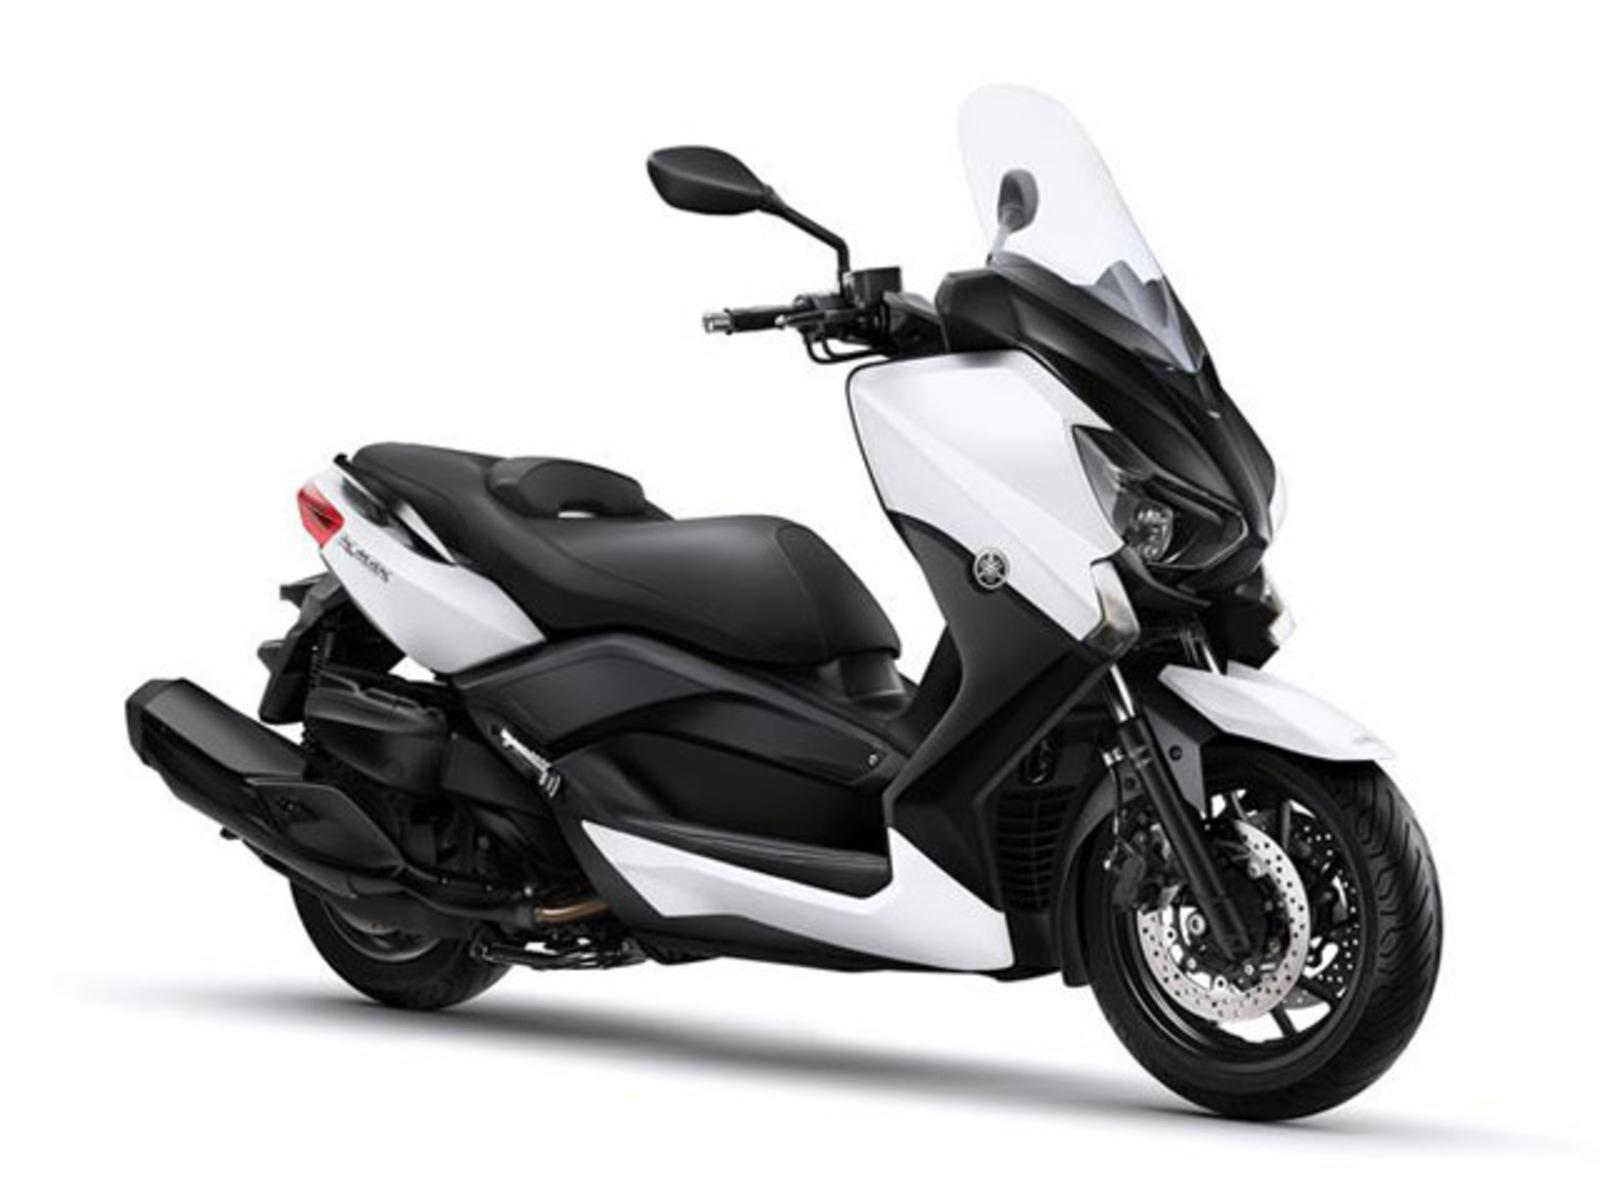 2015 yamaha x max 400 review top speed. Black Bedroom Furniture Sets. Home Design Ideas